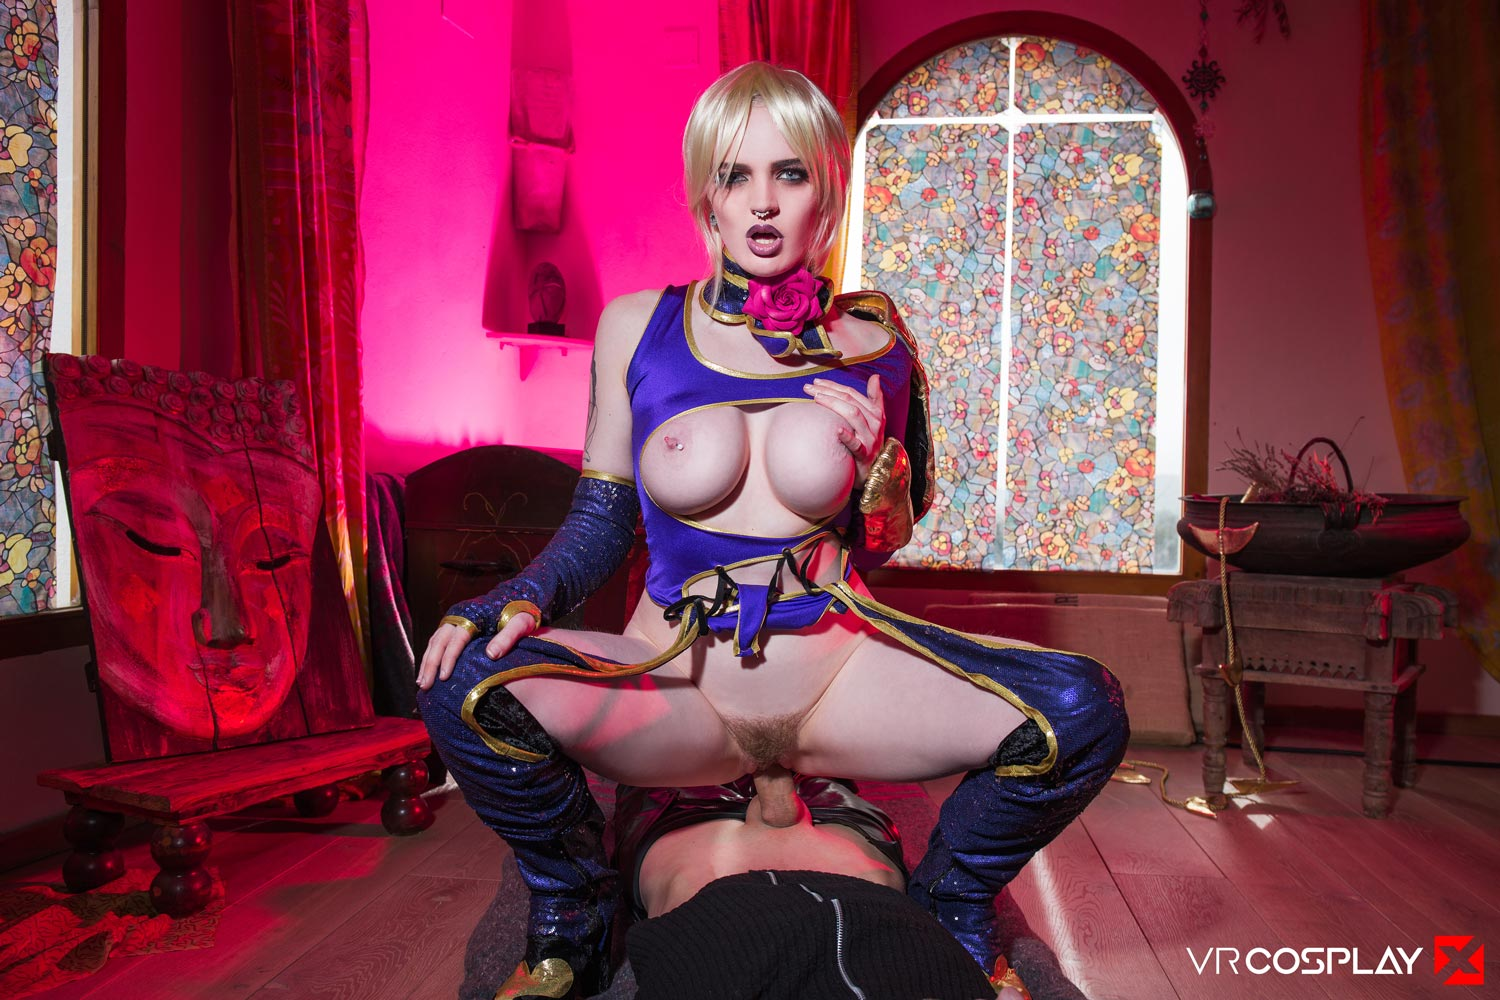 Soulcalibur Vr Porn Cosplay Starring Carly Rae Summers -8248